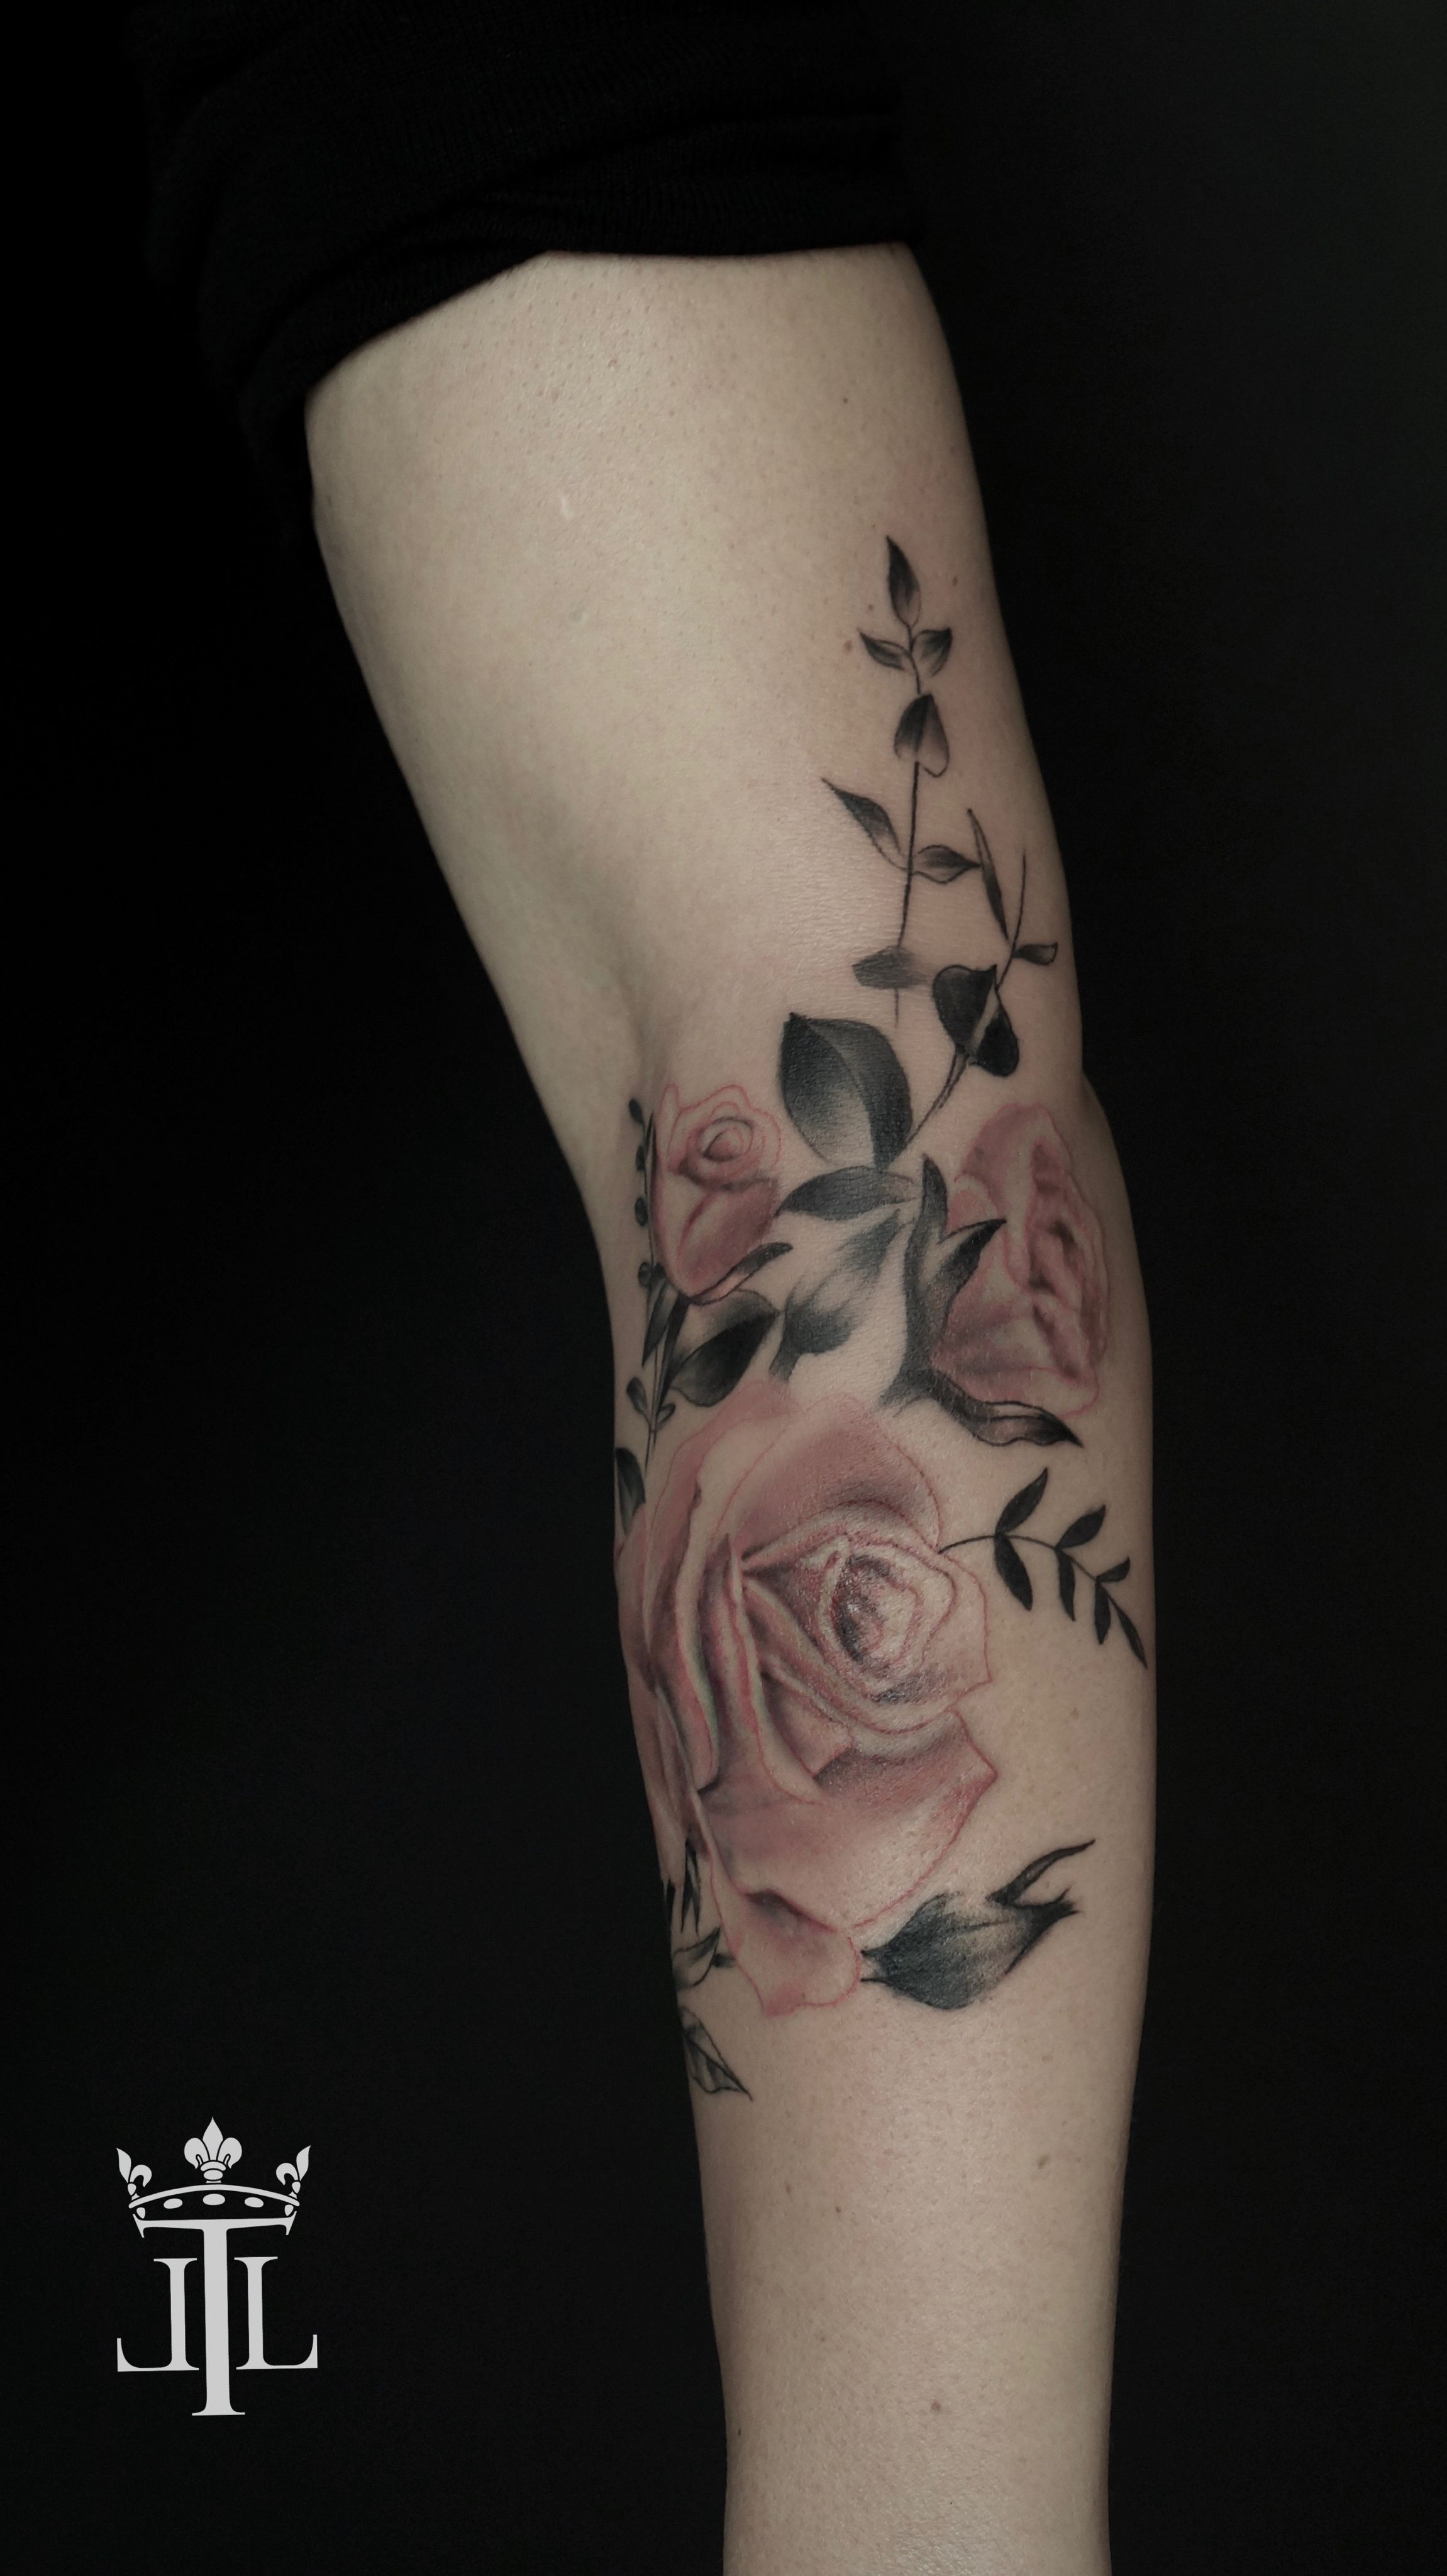 Colored Rose Tattoo Underarm Sleeve By Lebende Legend Tattoo Armtatueringar Tatuering Rosor Browse our designs and decide which arm tat is the best for you as a handsome guy. colored rose tattoo underarm sleeve by